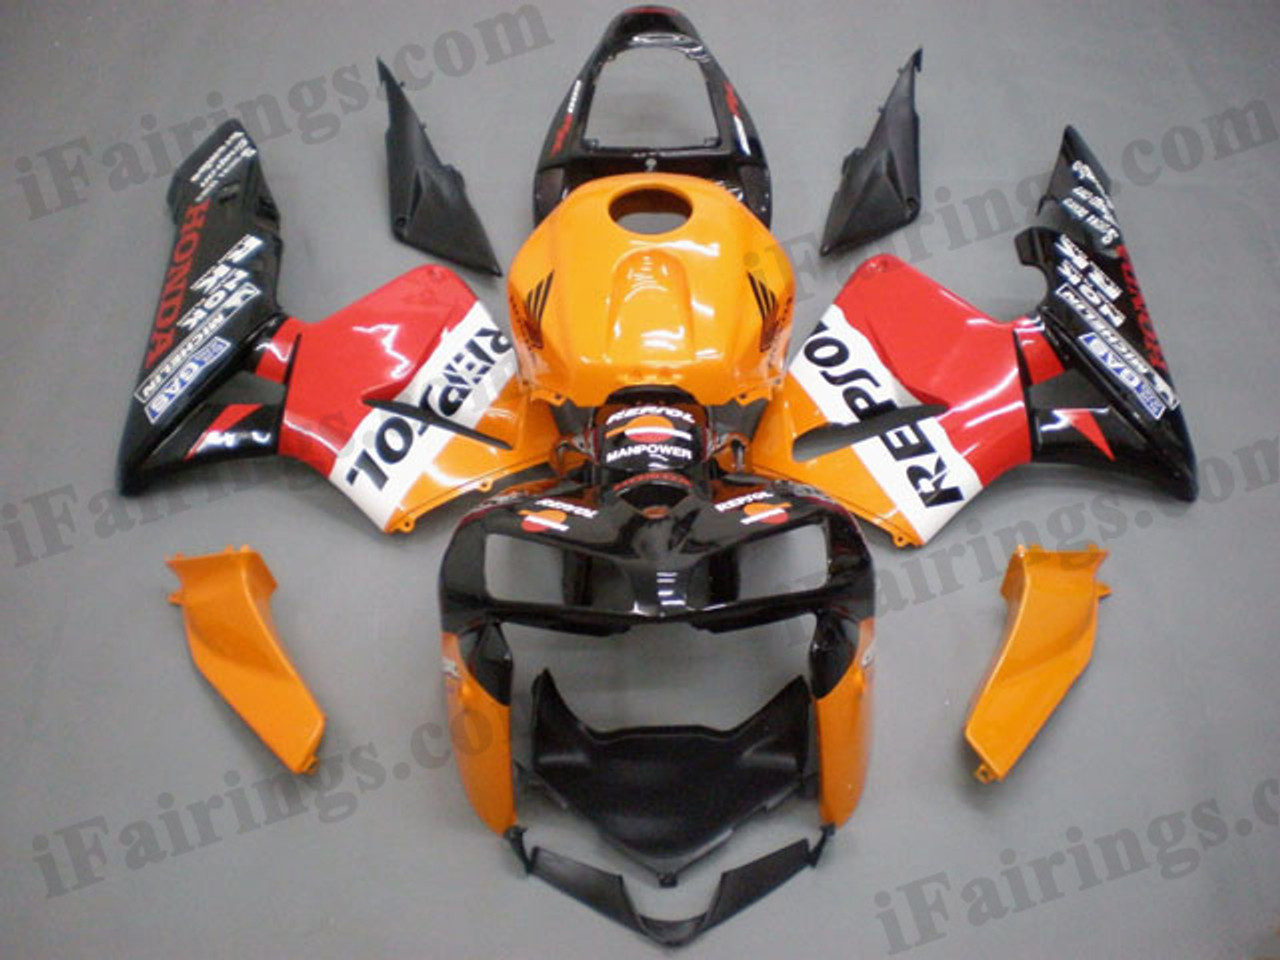 Aftermarket Fairing Kits For 2005 2006 Cbr600rr Repsol Graphics